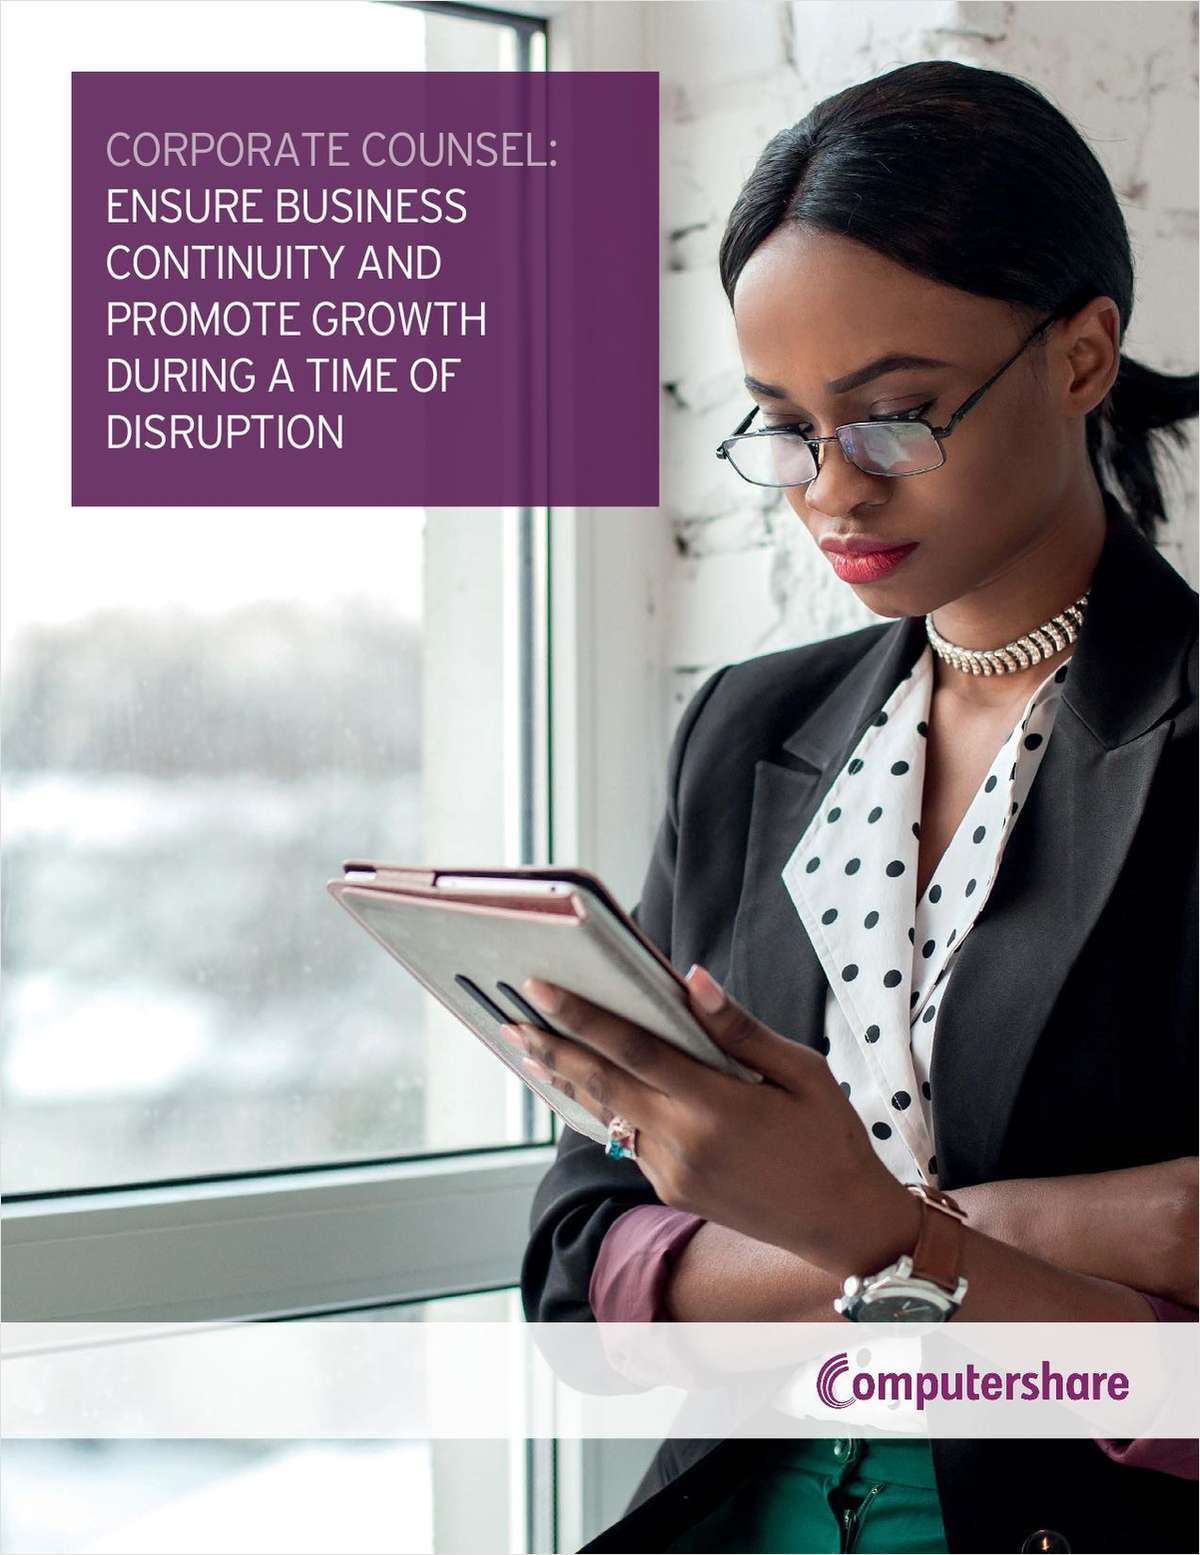 Corporate Counsel: Ensure Business Continuity and Promote Growth During A Time of Disruption